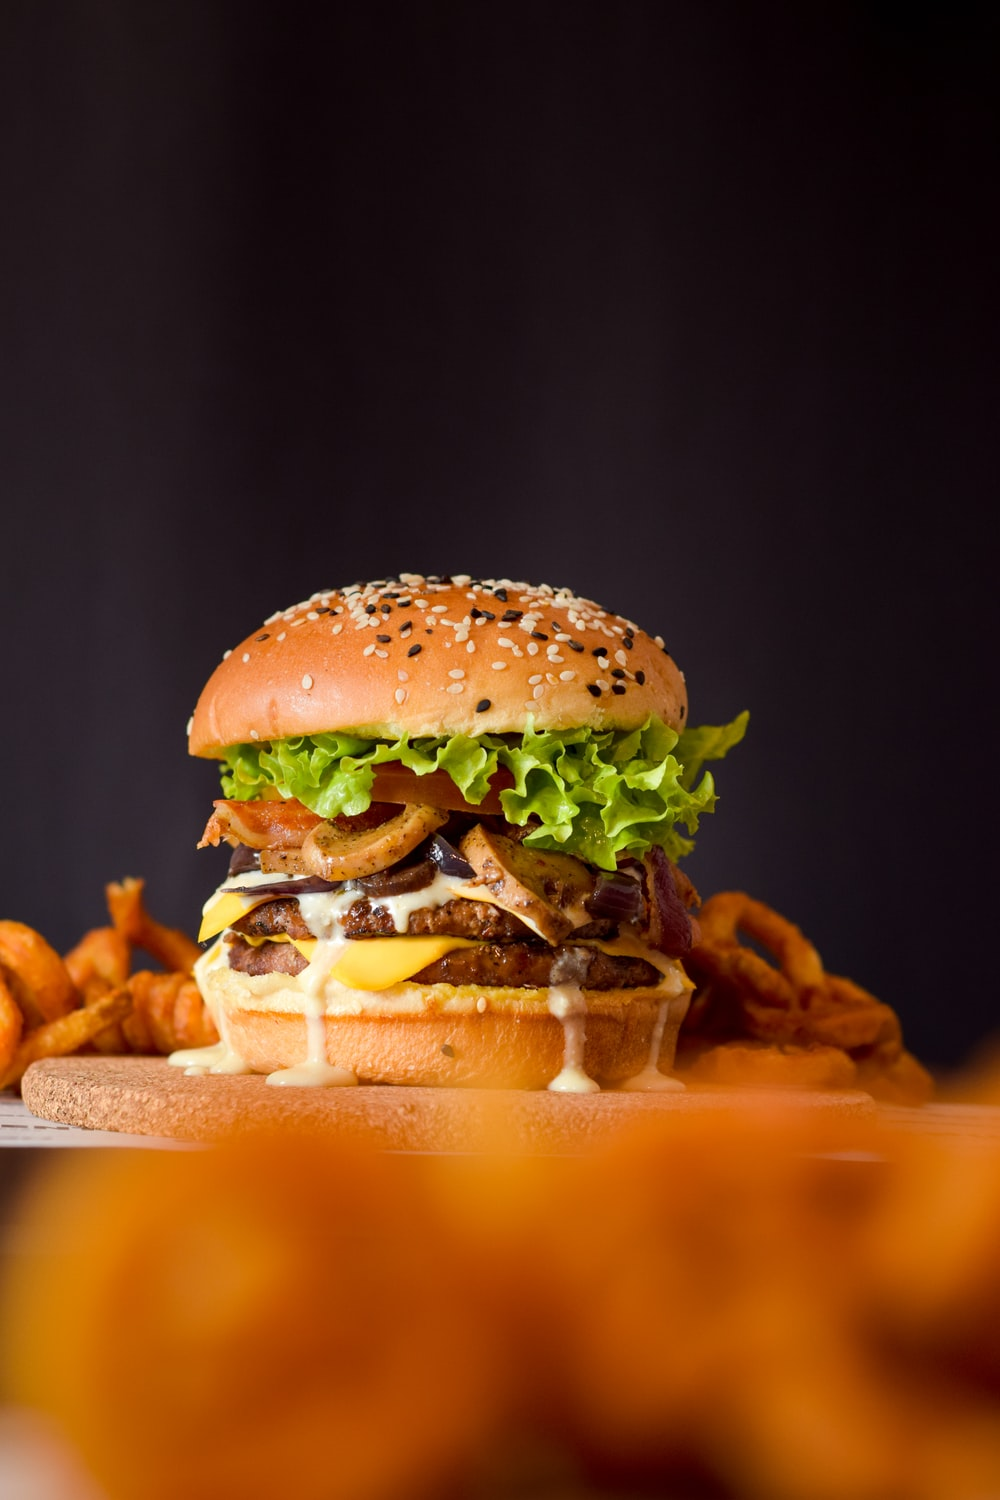 burger with lettuce and tomato on brown wooden tray